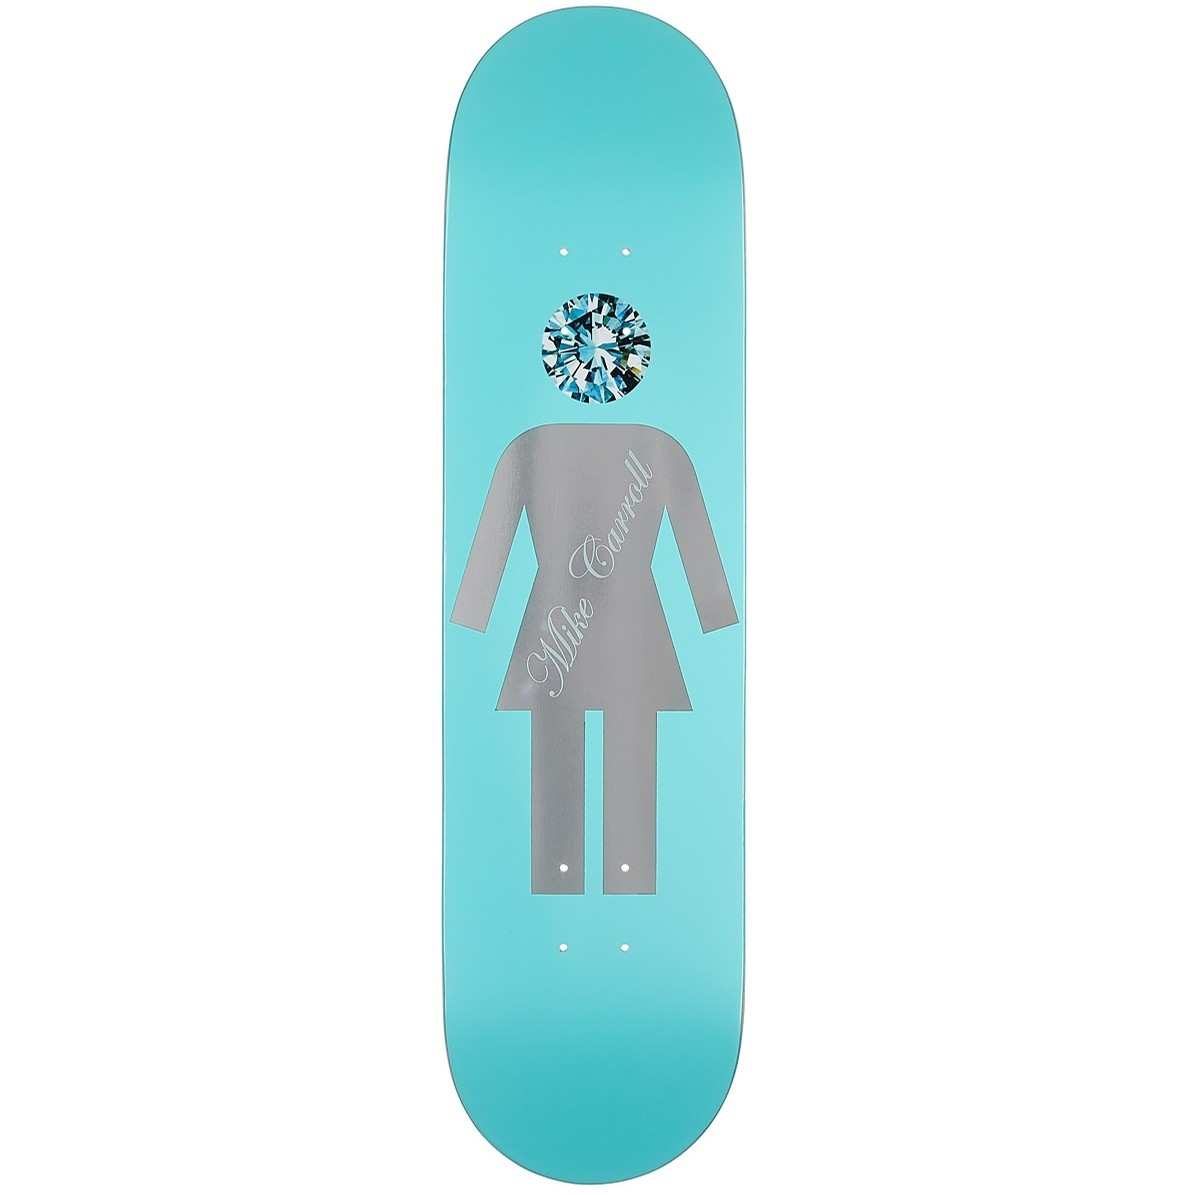 Carroll Diamond Deck (8.0)